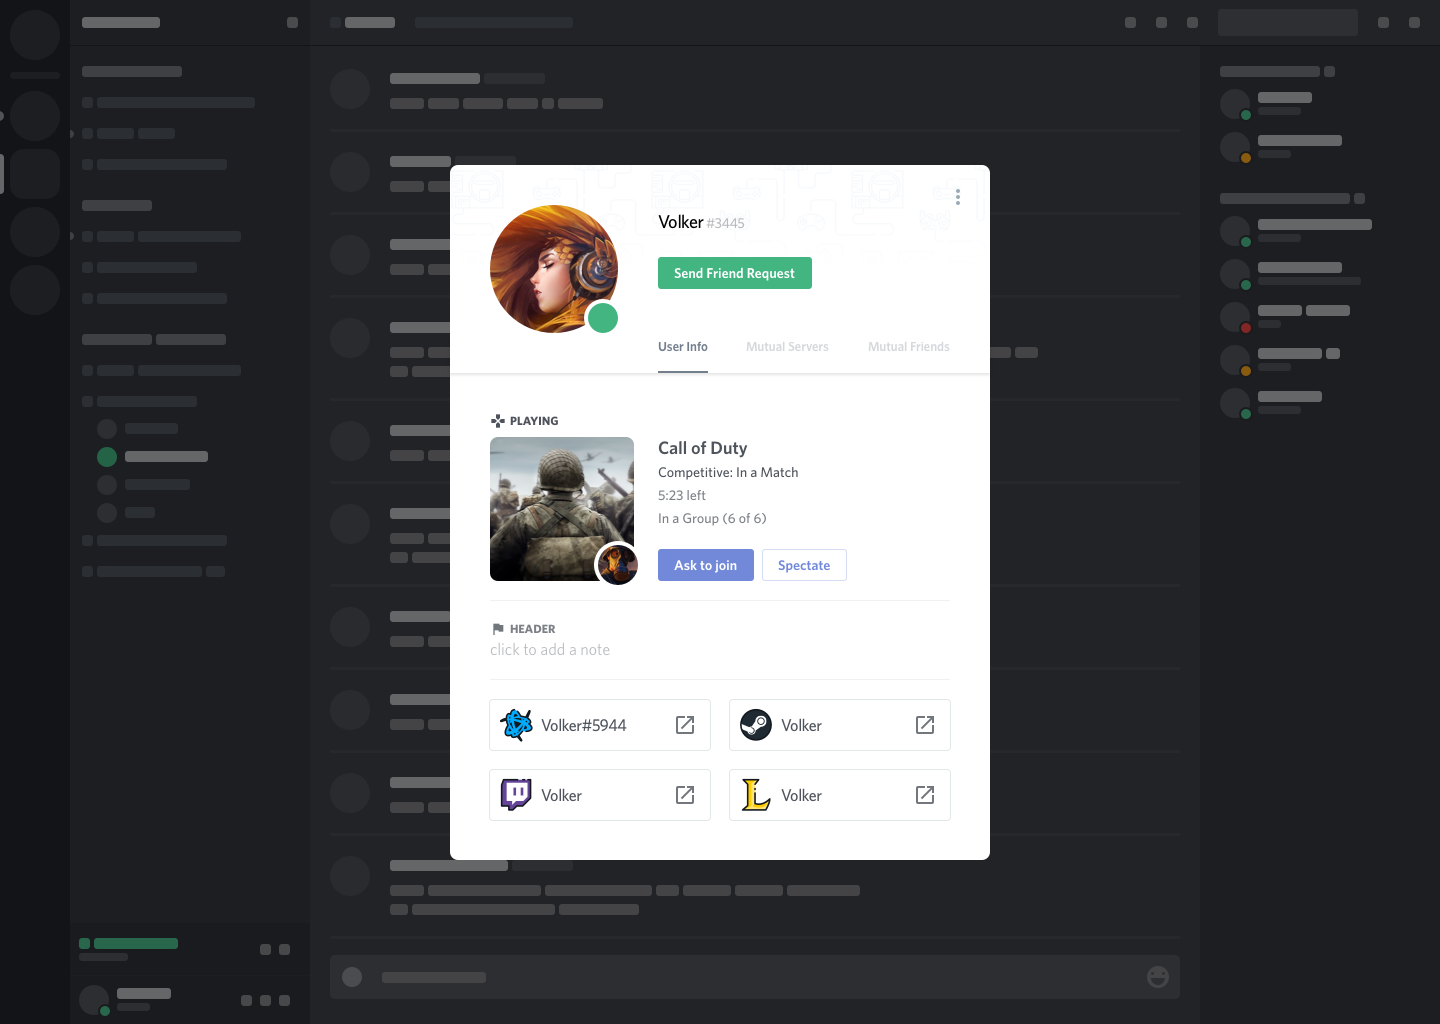 Techmeme: Discord launches Rich Presence SDK to let users easily